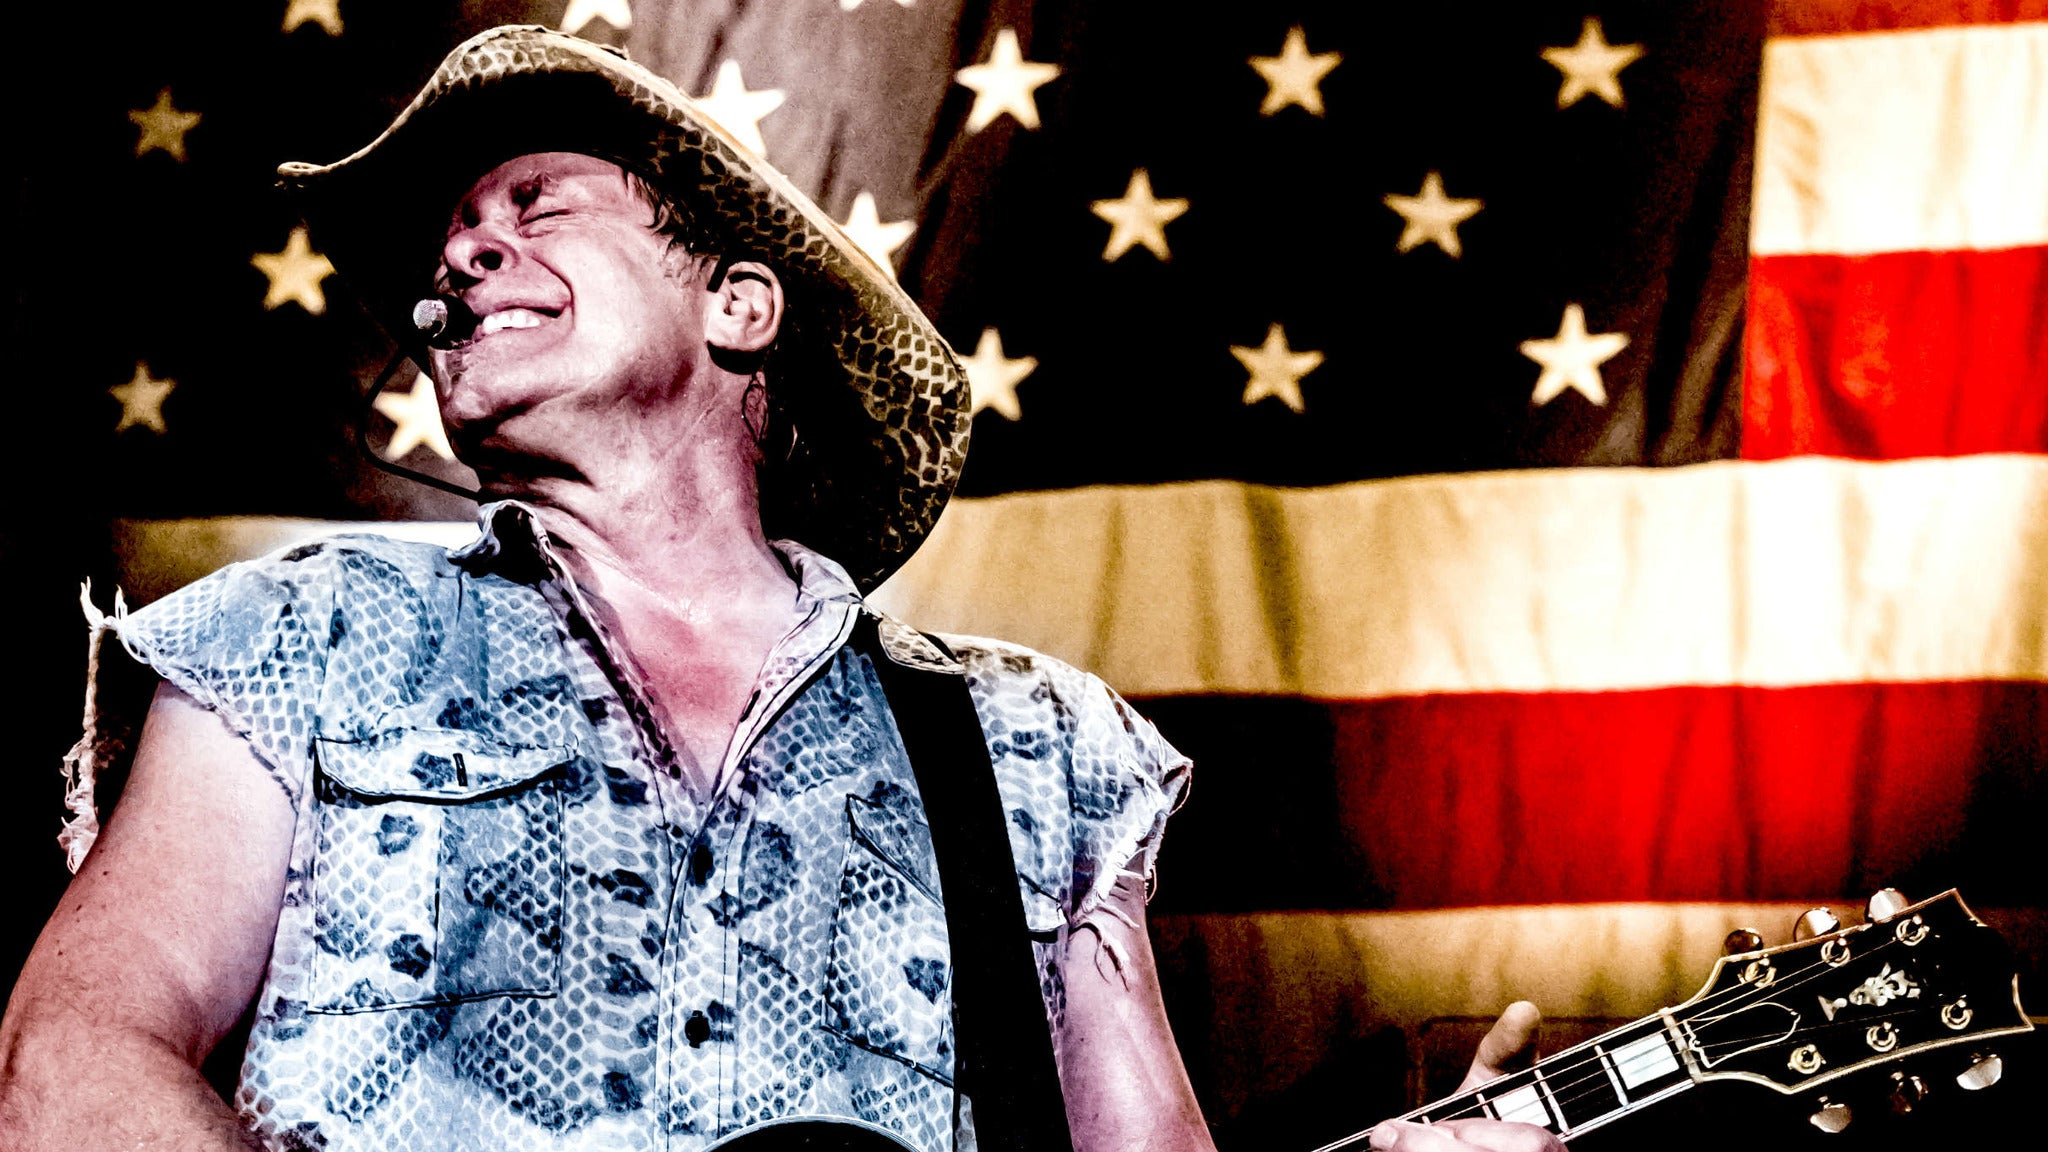 Ted Nugent: The Music Made Me Do It Again